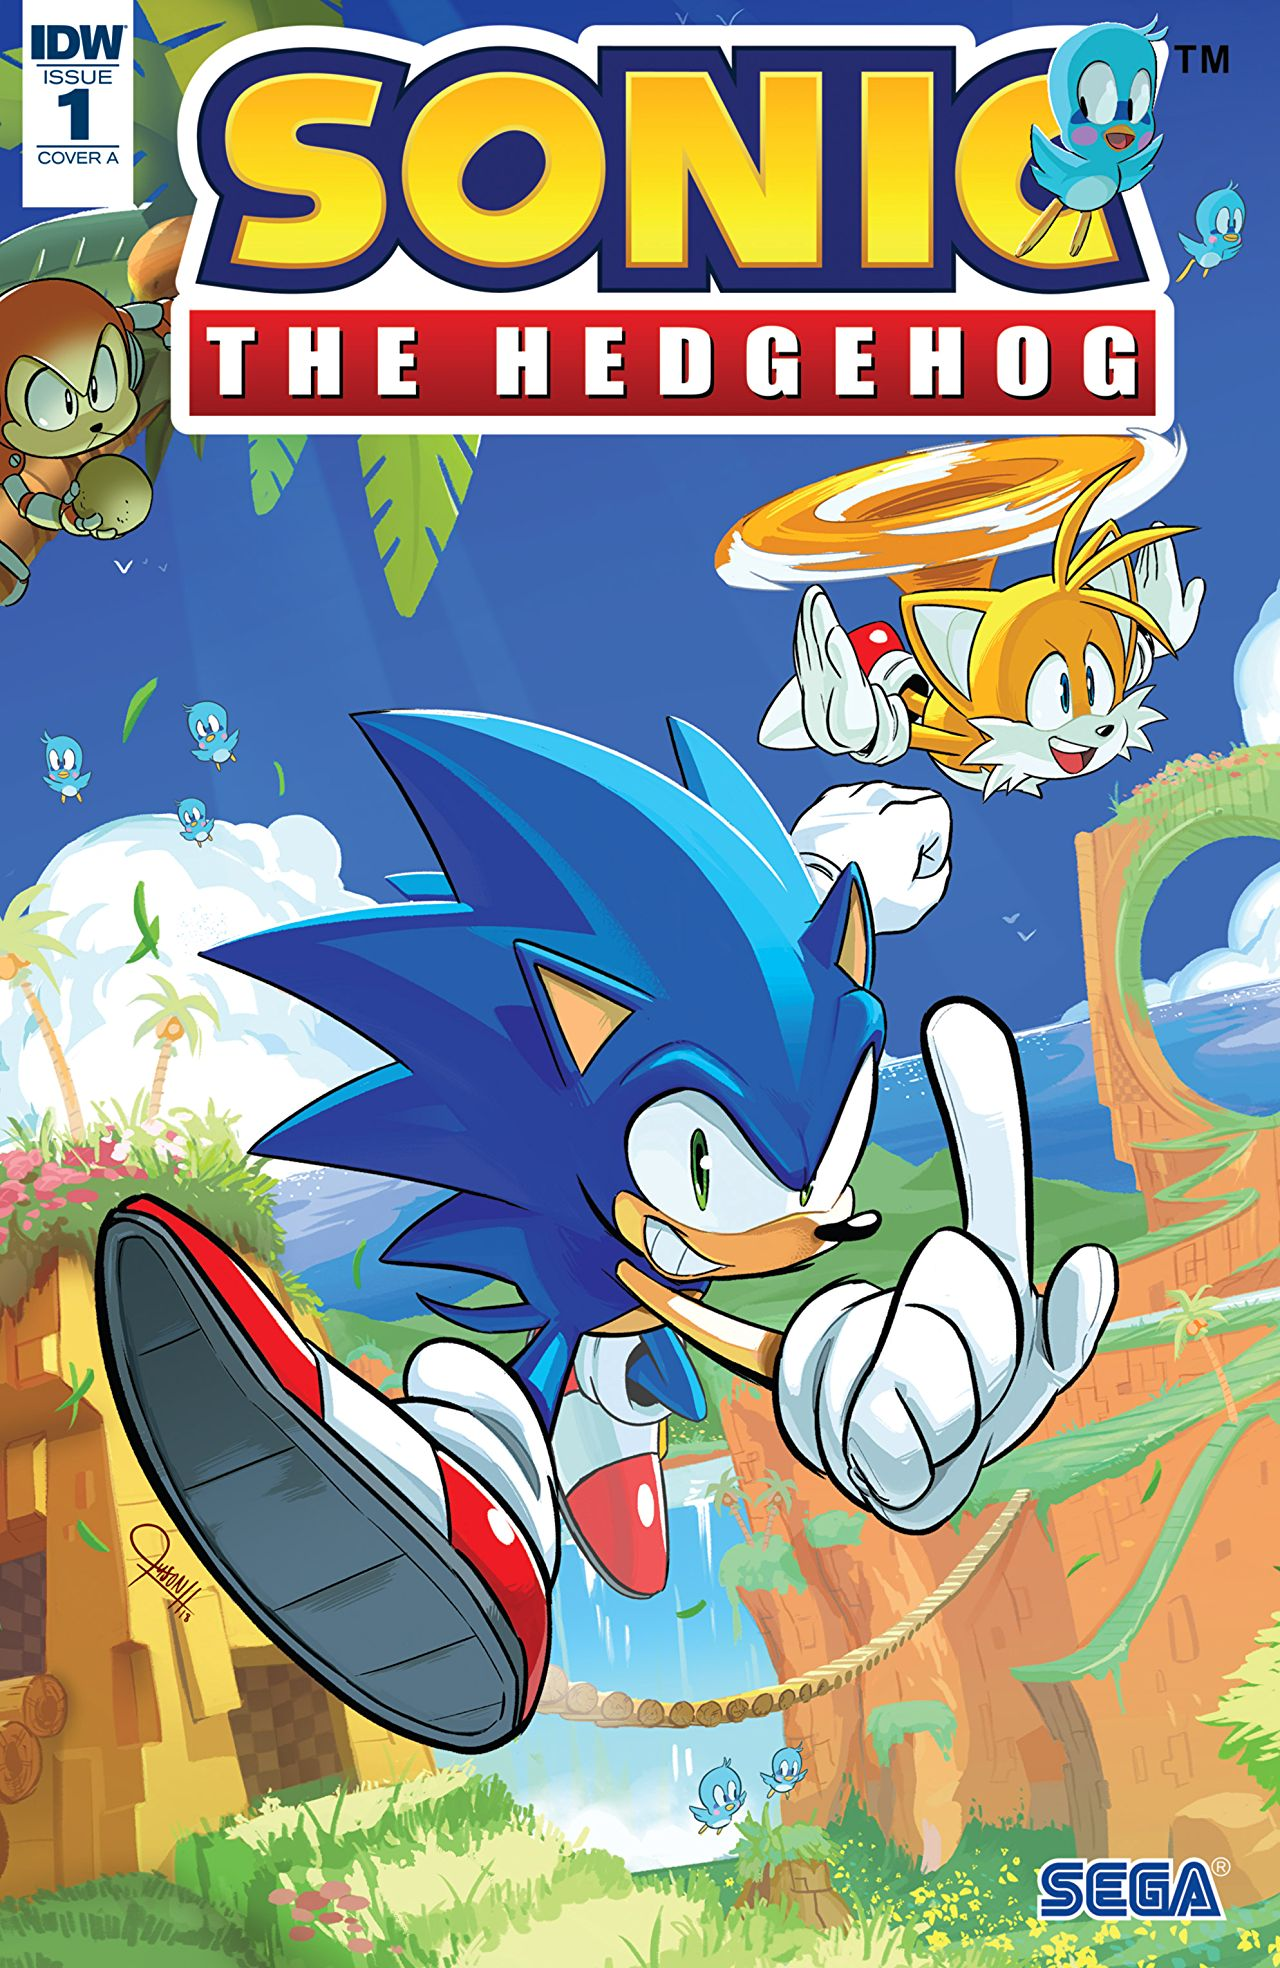 Sonic the Hedgehog #1 Review: IDW's new series is a worthy successor